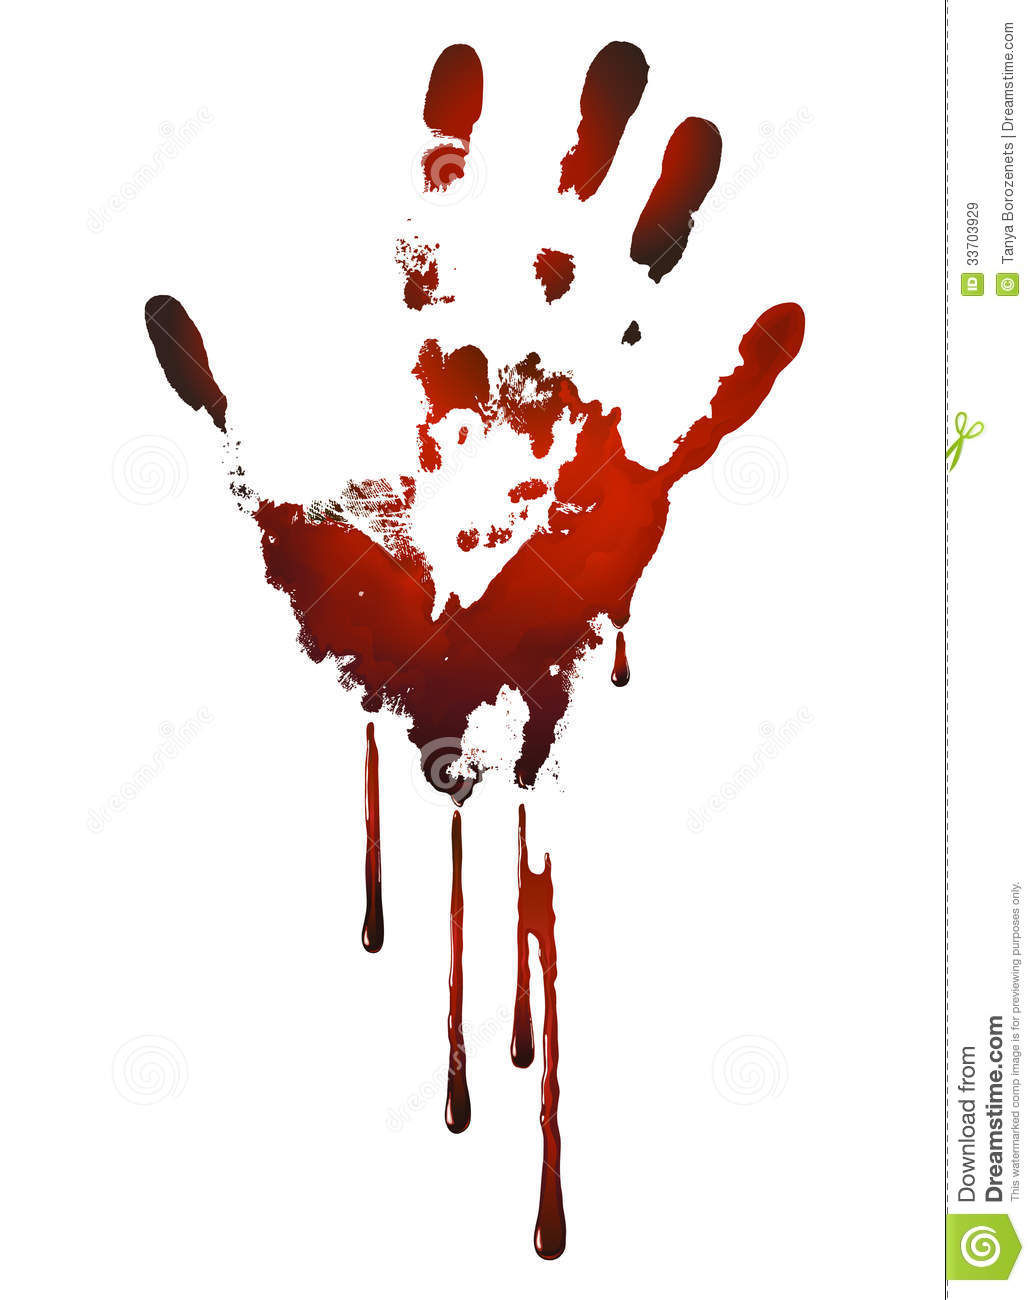 Red Dead Redemption Wallpaper Hd Bloody Handprint Royalty Free Stock Images Image 33703929